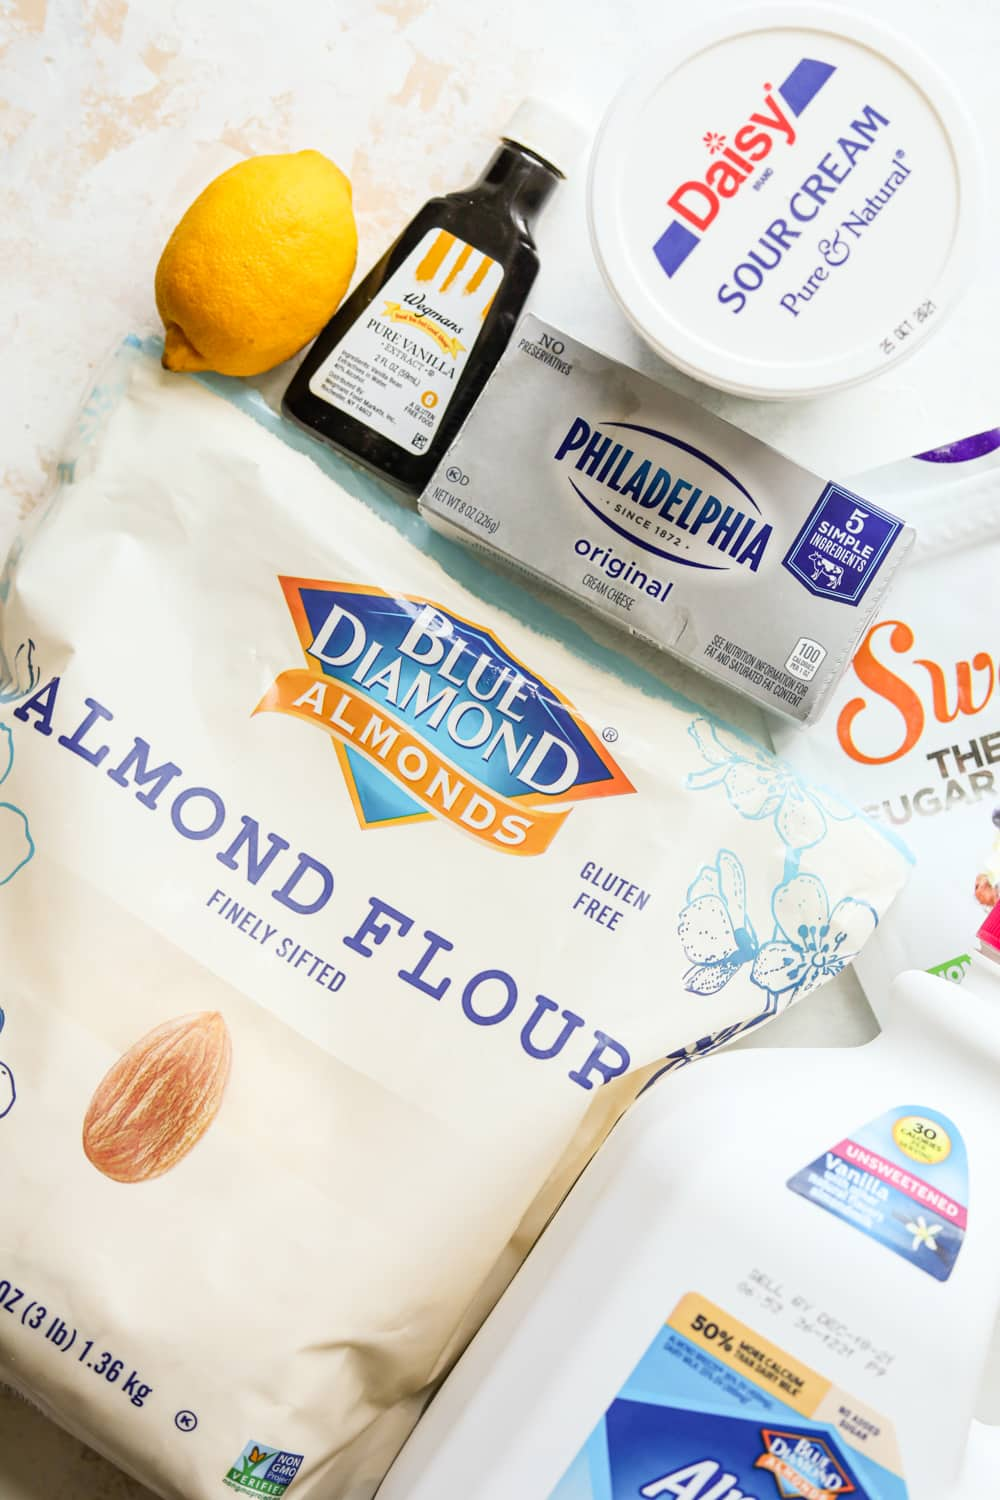 All different ingredients that are in their packaging on a white backdrop.